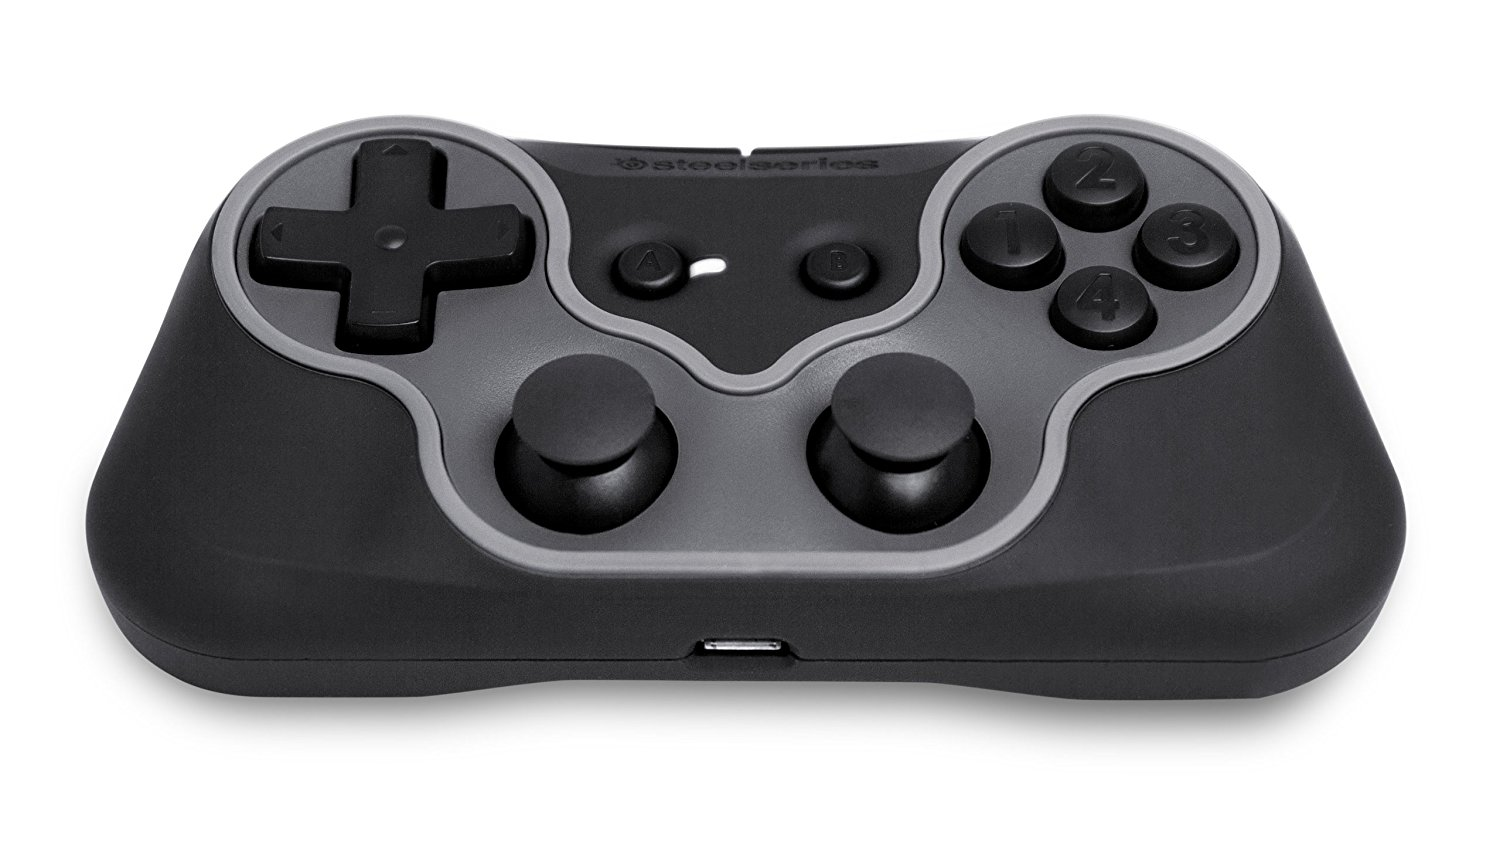 Amazon Fire TV and Fire Tablet Game Controller Guide - The